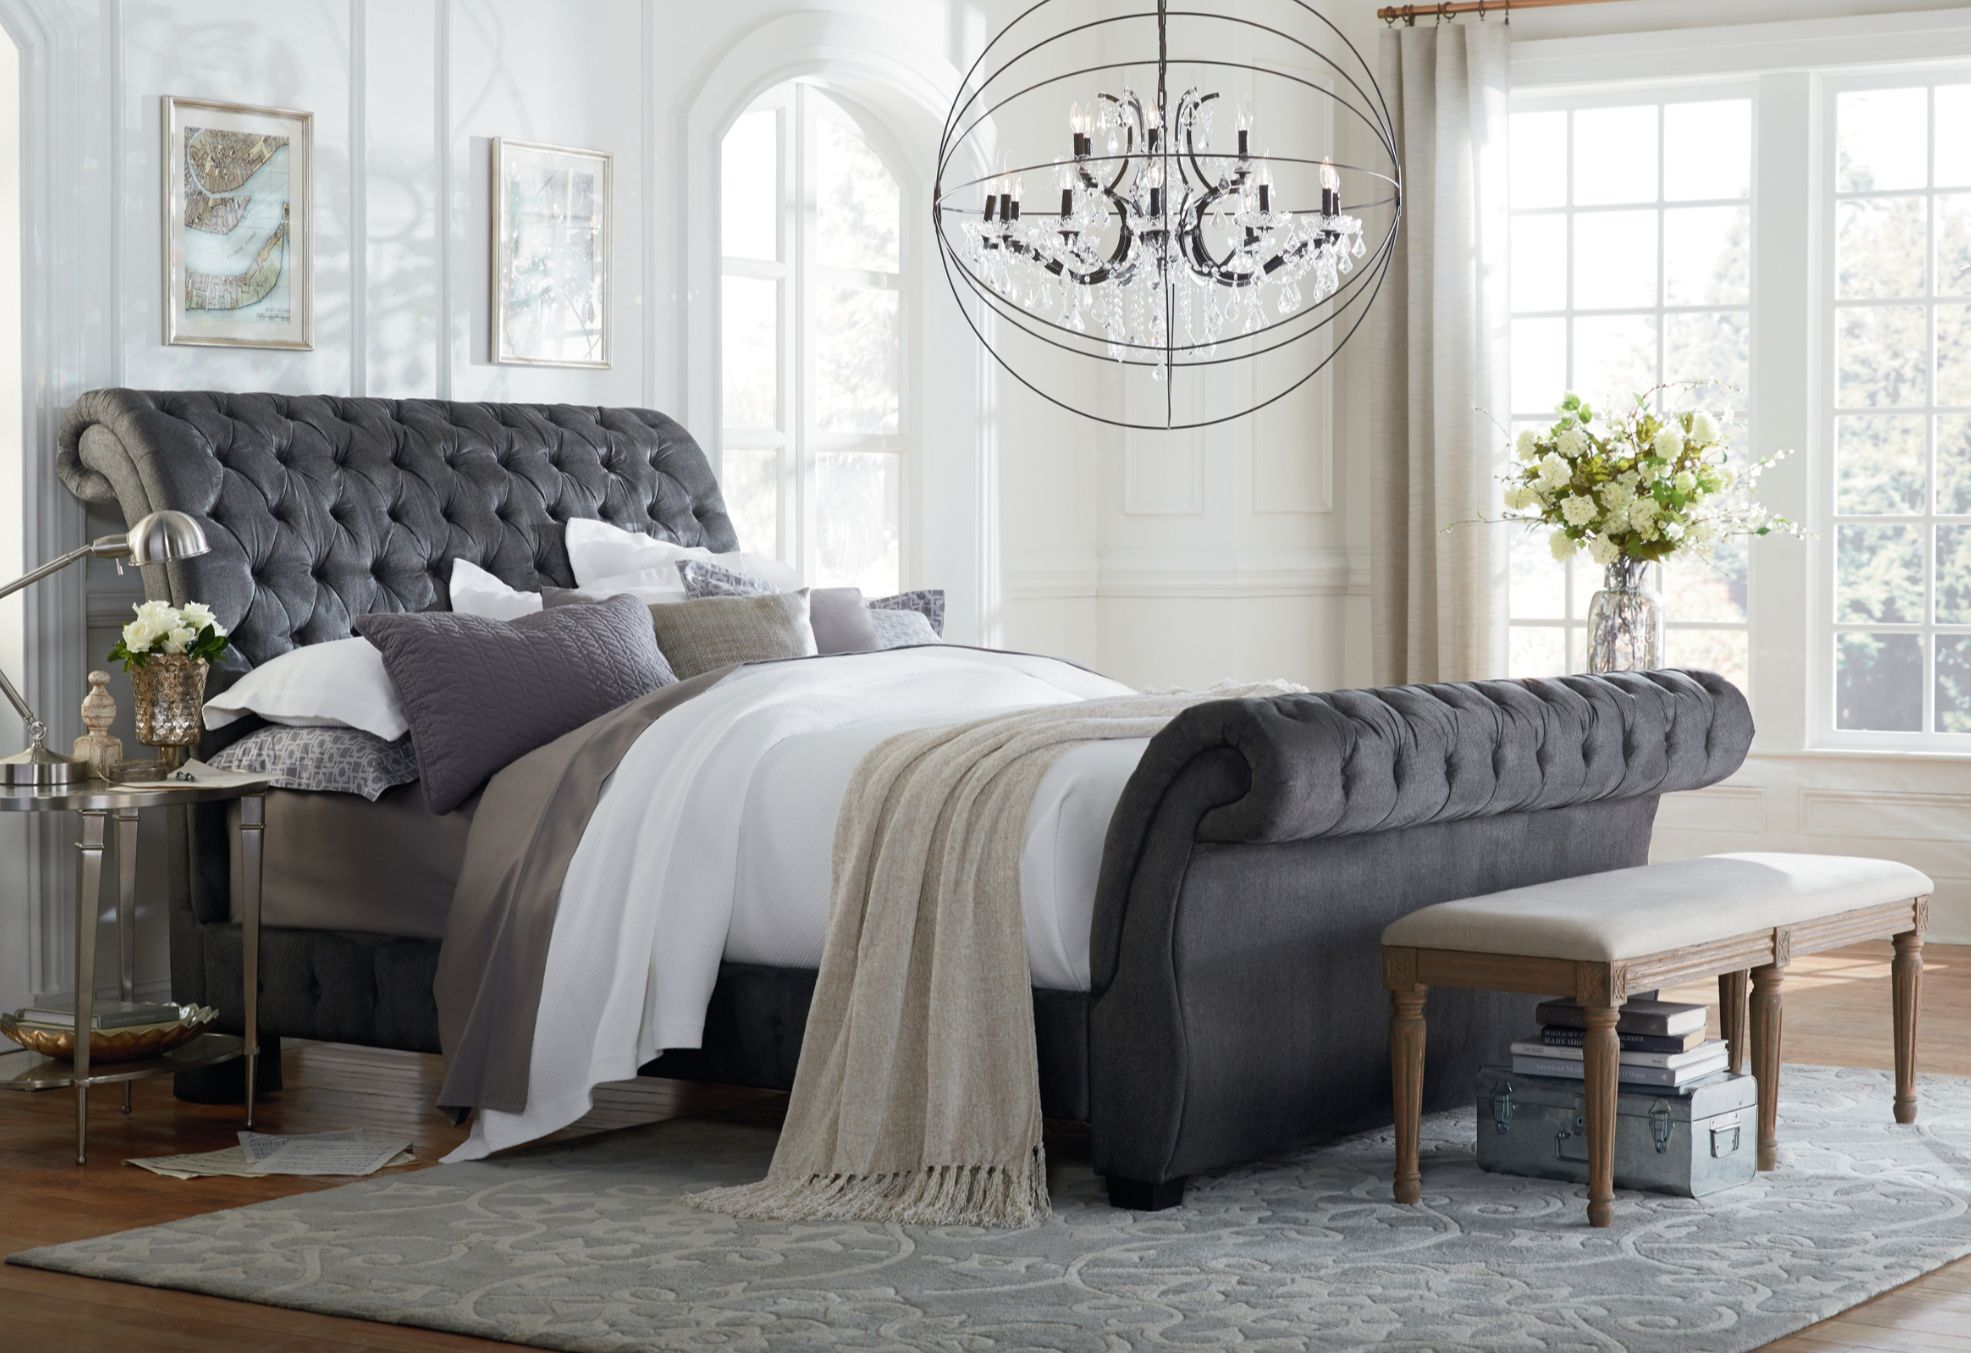 Gunmetal Tufted Sleigh Bed Inexpensive Bedroom Furniture King Upholstered Bed Bedroom Sets